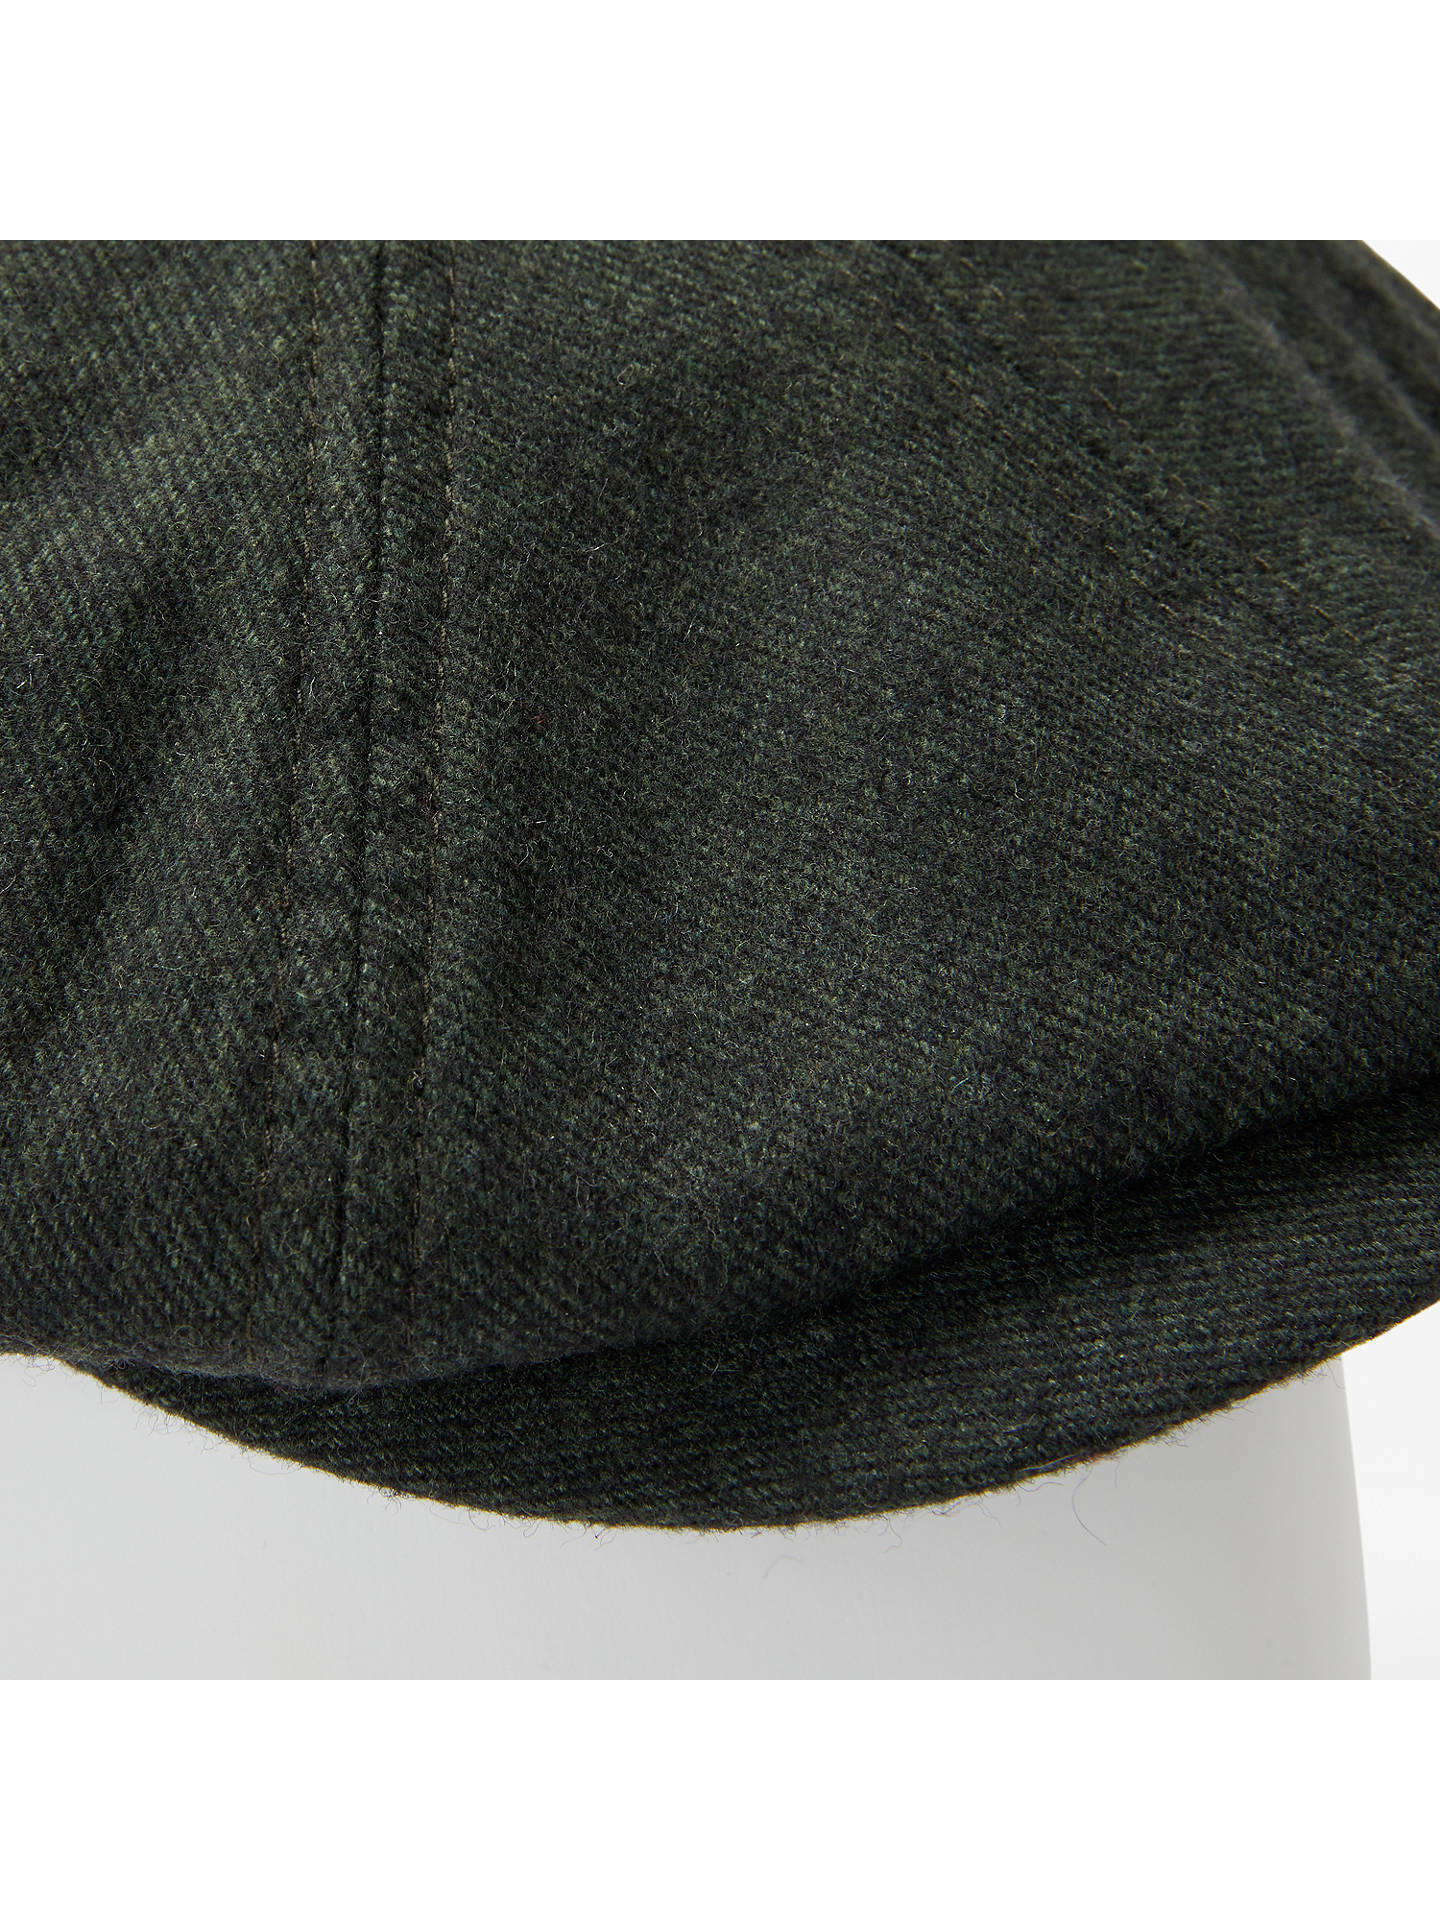 Buy Ted Baker Baker Boy Hat, Green, S/M Online at johnlewis.com